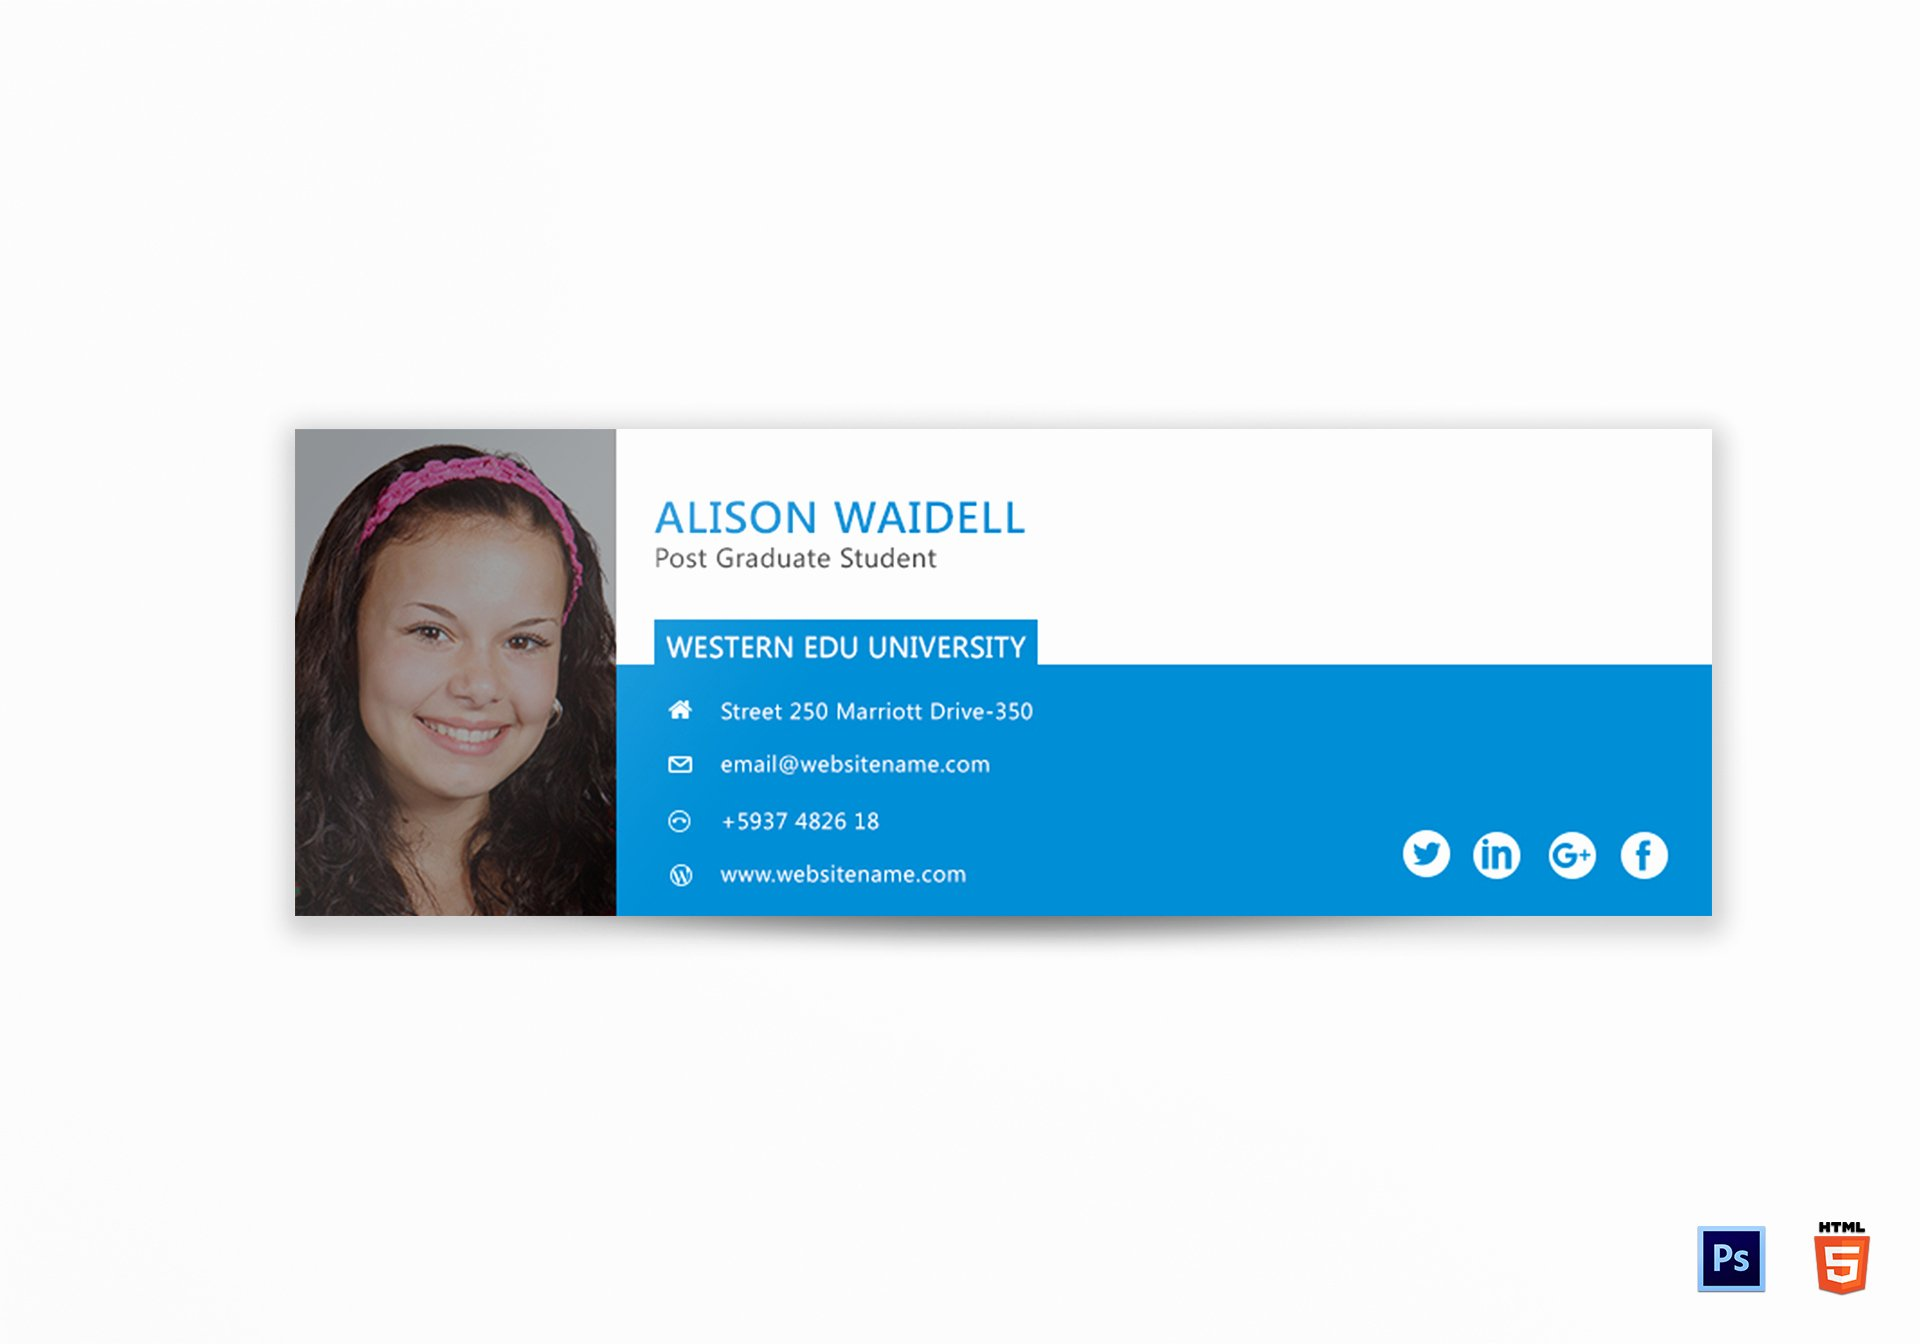 Professional Email Signature College Student New Postgraduate Student Email Signature Design Template In Psd HTML